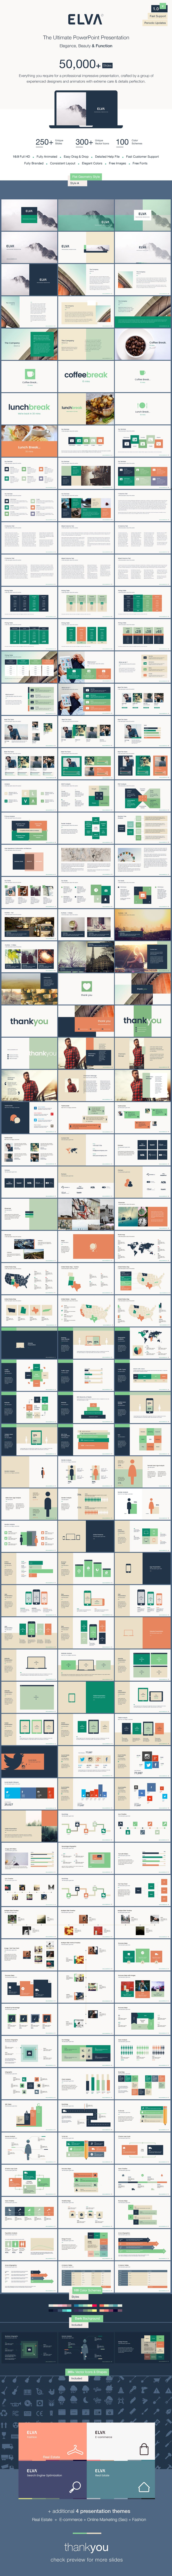 Ultimate Powerpoint Presentation Template  Plantillas Y Diseo